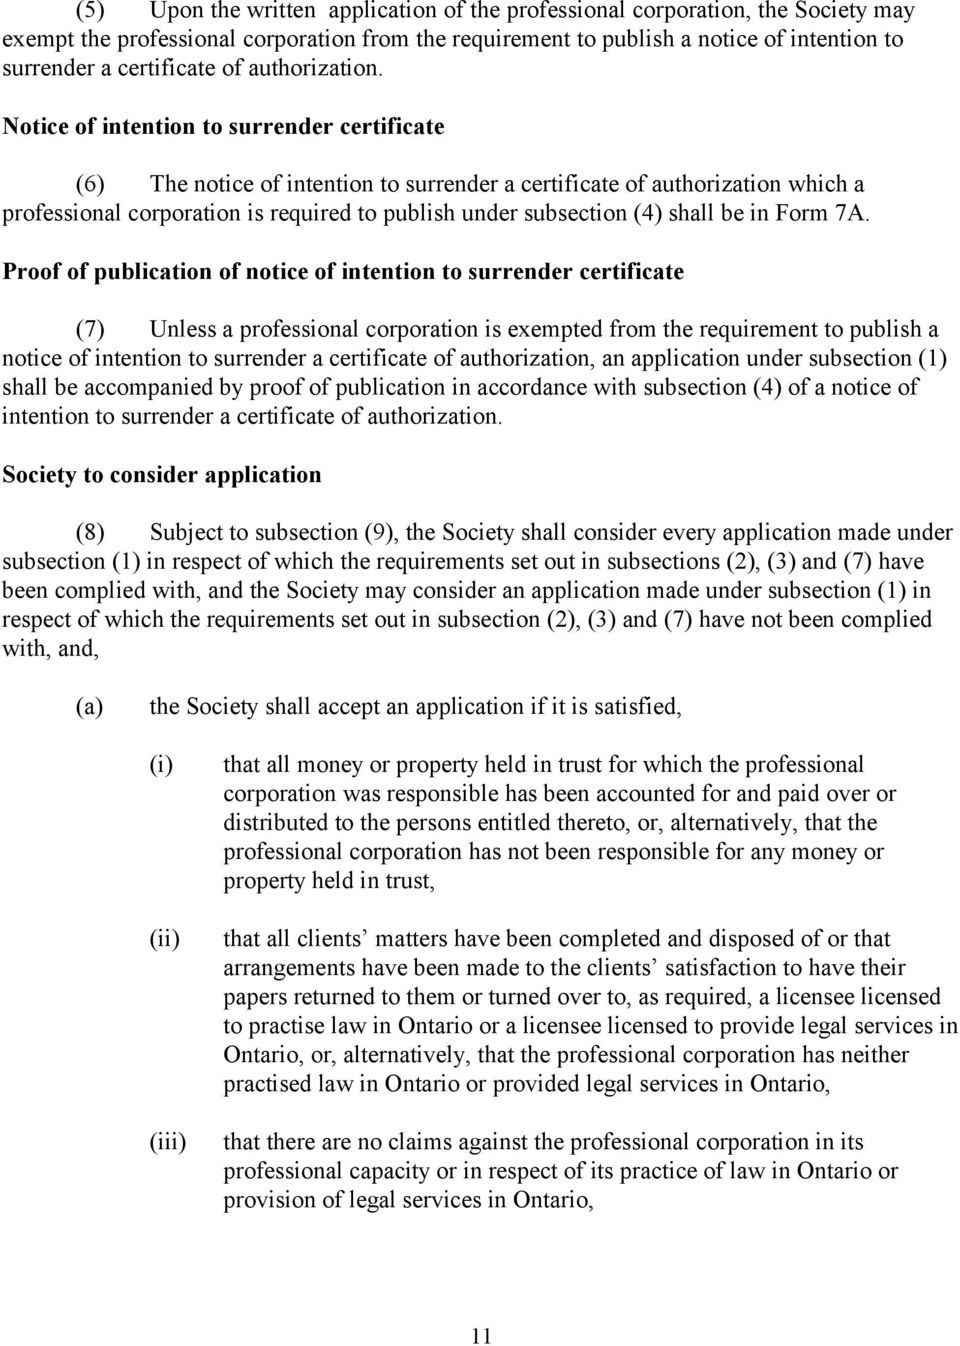 Notice of intention to surrender certificate (6) The notice of intention to surrender a certificate of authorization which a professional corporation is required to publish under subsection (4) shall